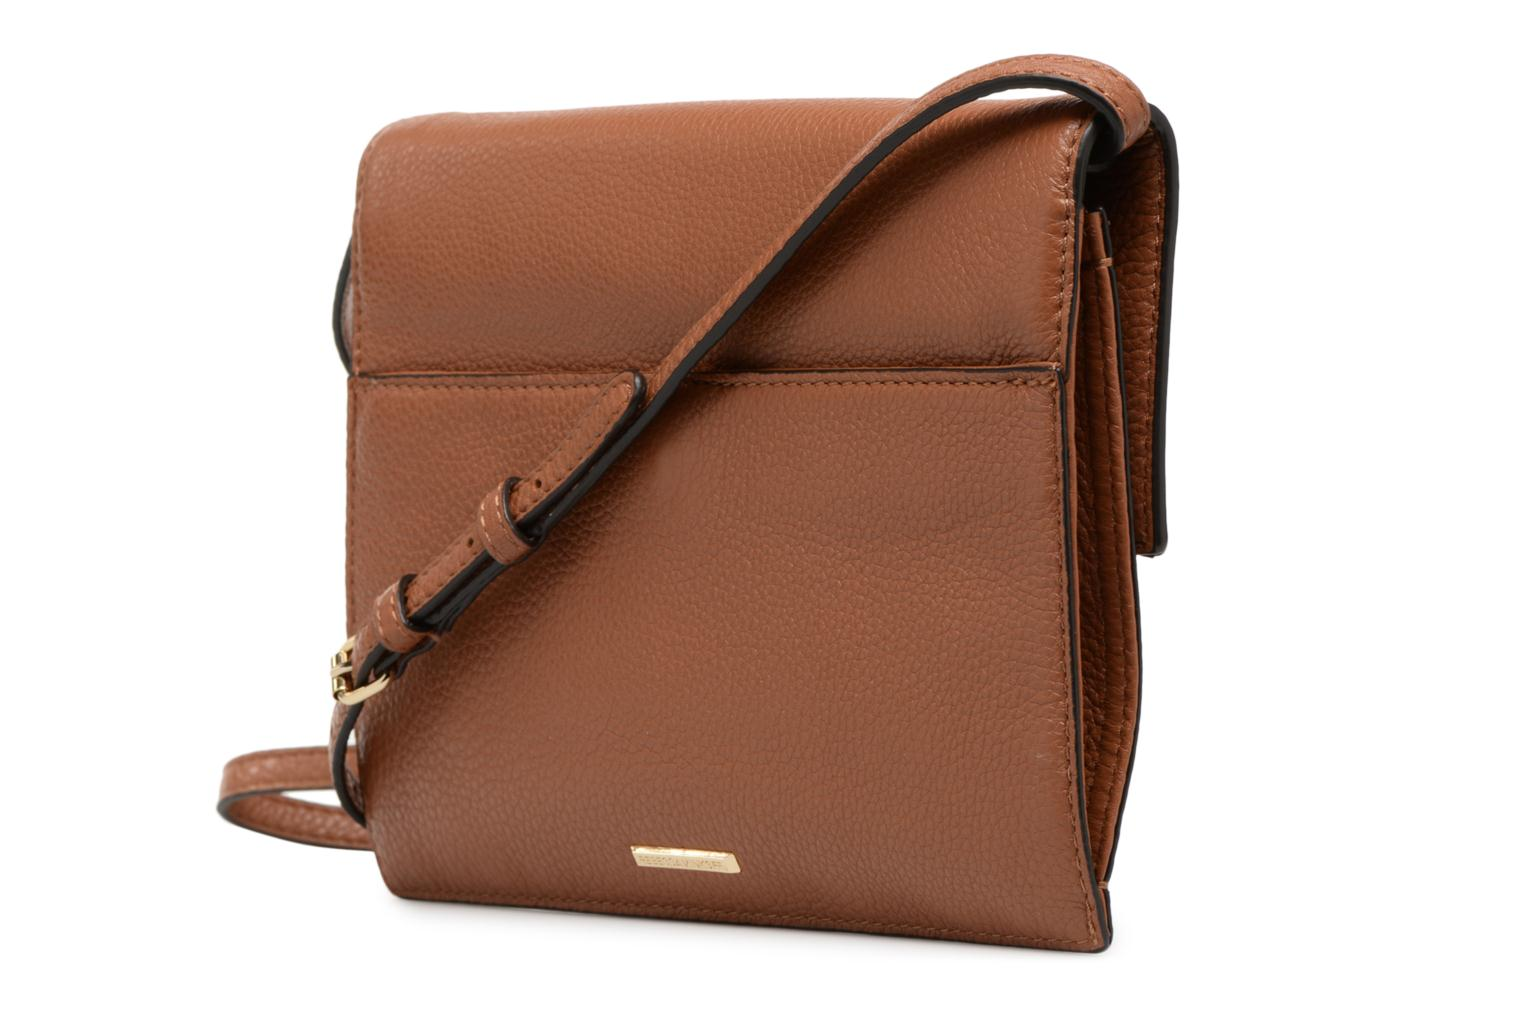 Sacs à main Rebecca Minkoff SMALL REGAN CLUTCH Marron vue droite